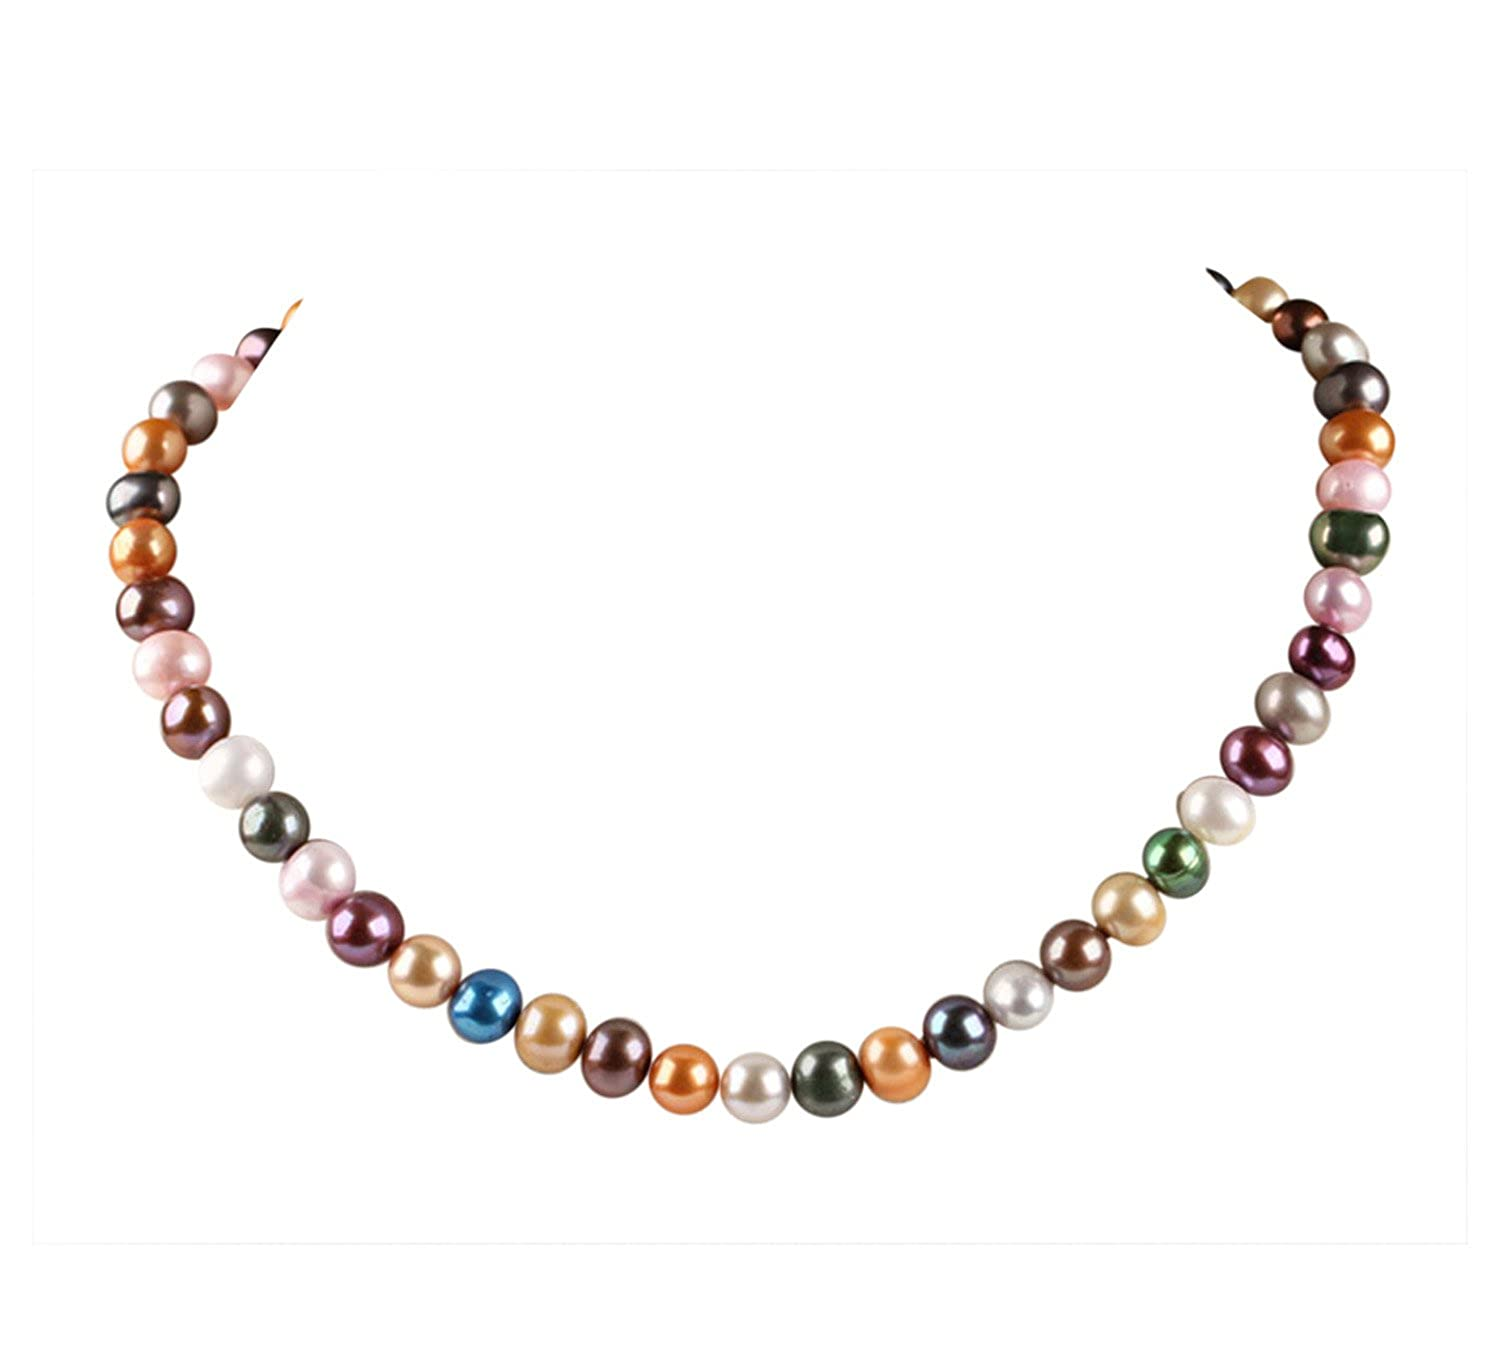 Treasurebay Stunning Multicolour 67mm Freshwater Pearl Necklace Length:  45cm Plus 5cm Chain Extender  Prsented In A Beautiful Jewellery Gift Box: